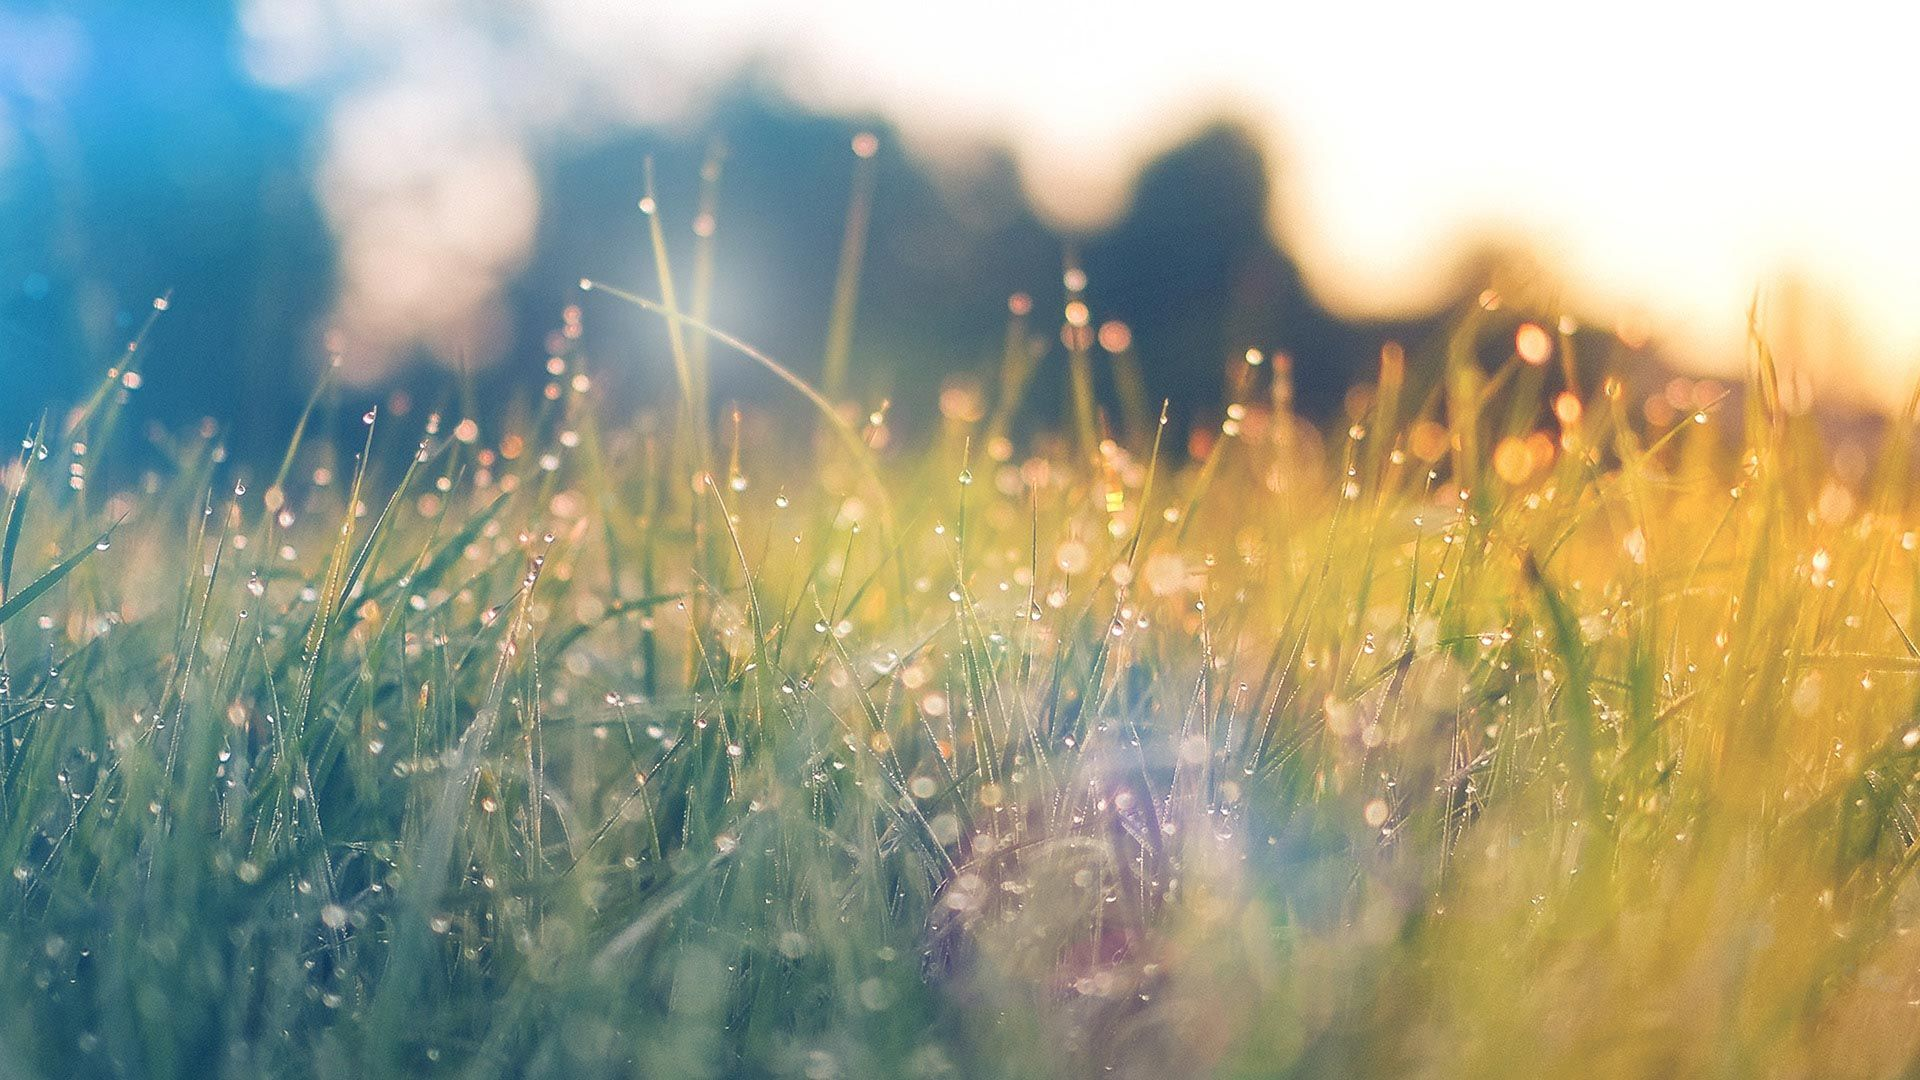 Grass in a field with light and water beads